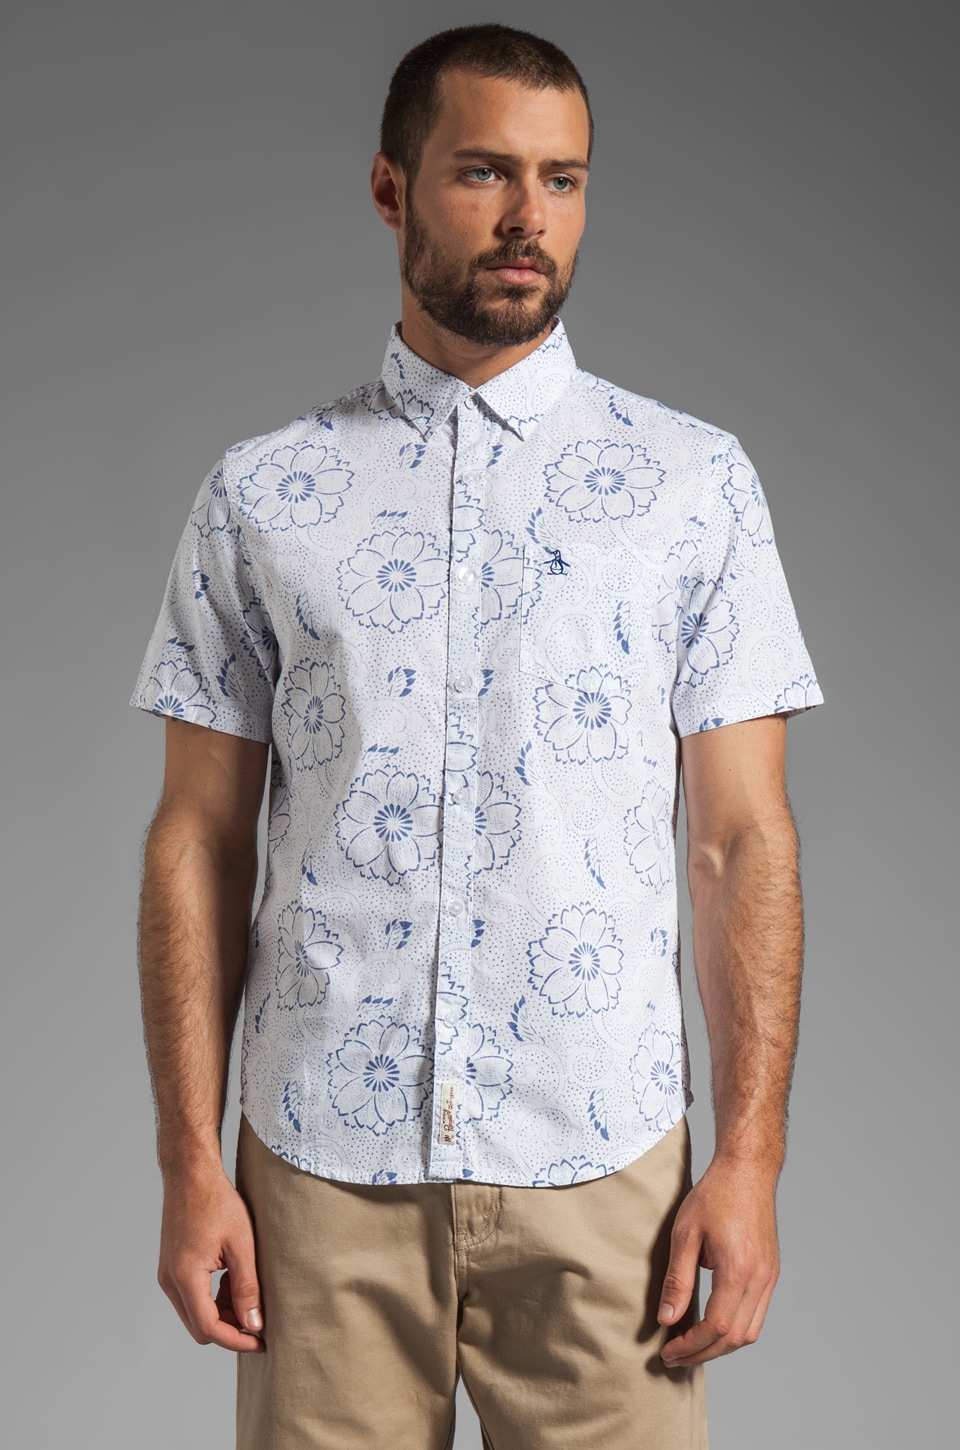 Penguin S/S Floral Woven Heritage Fit in Bright White